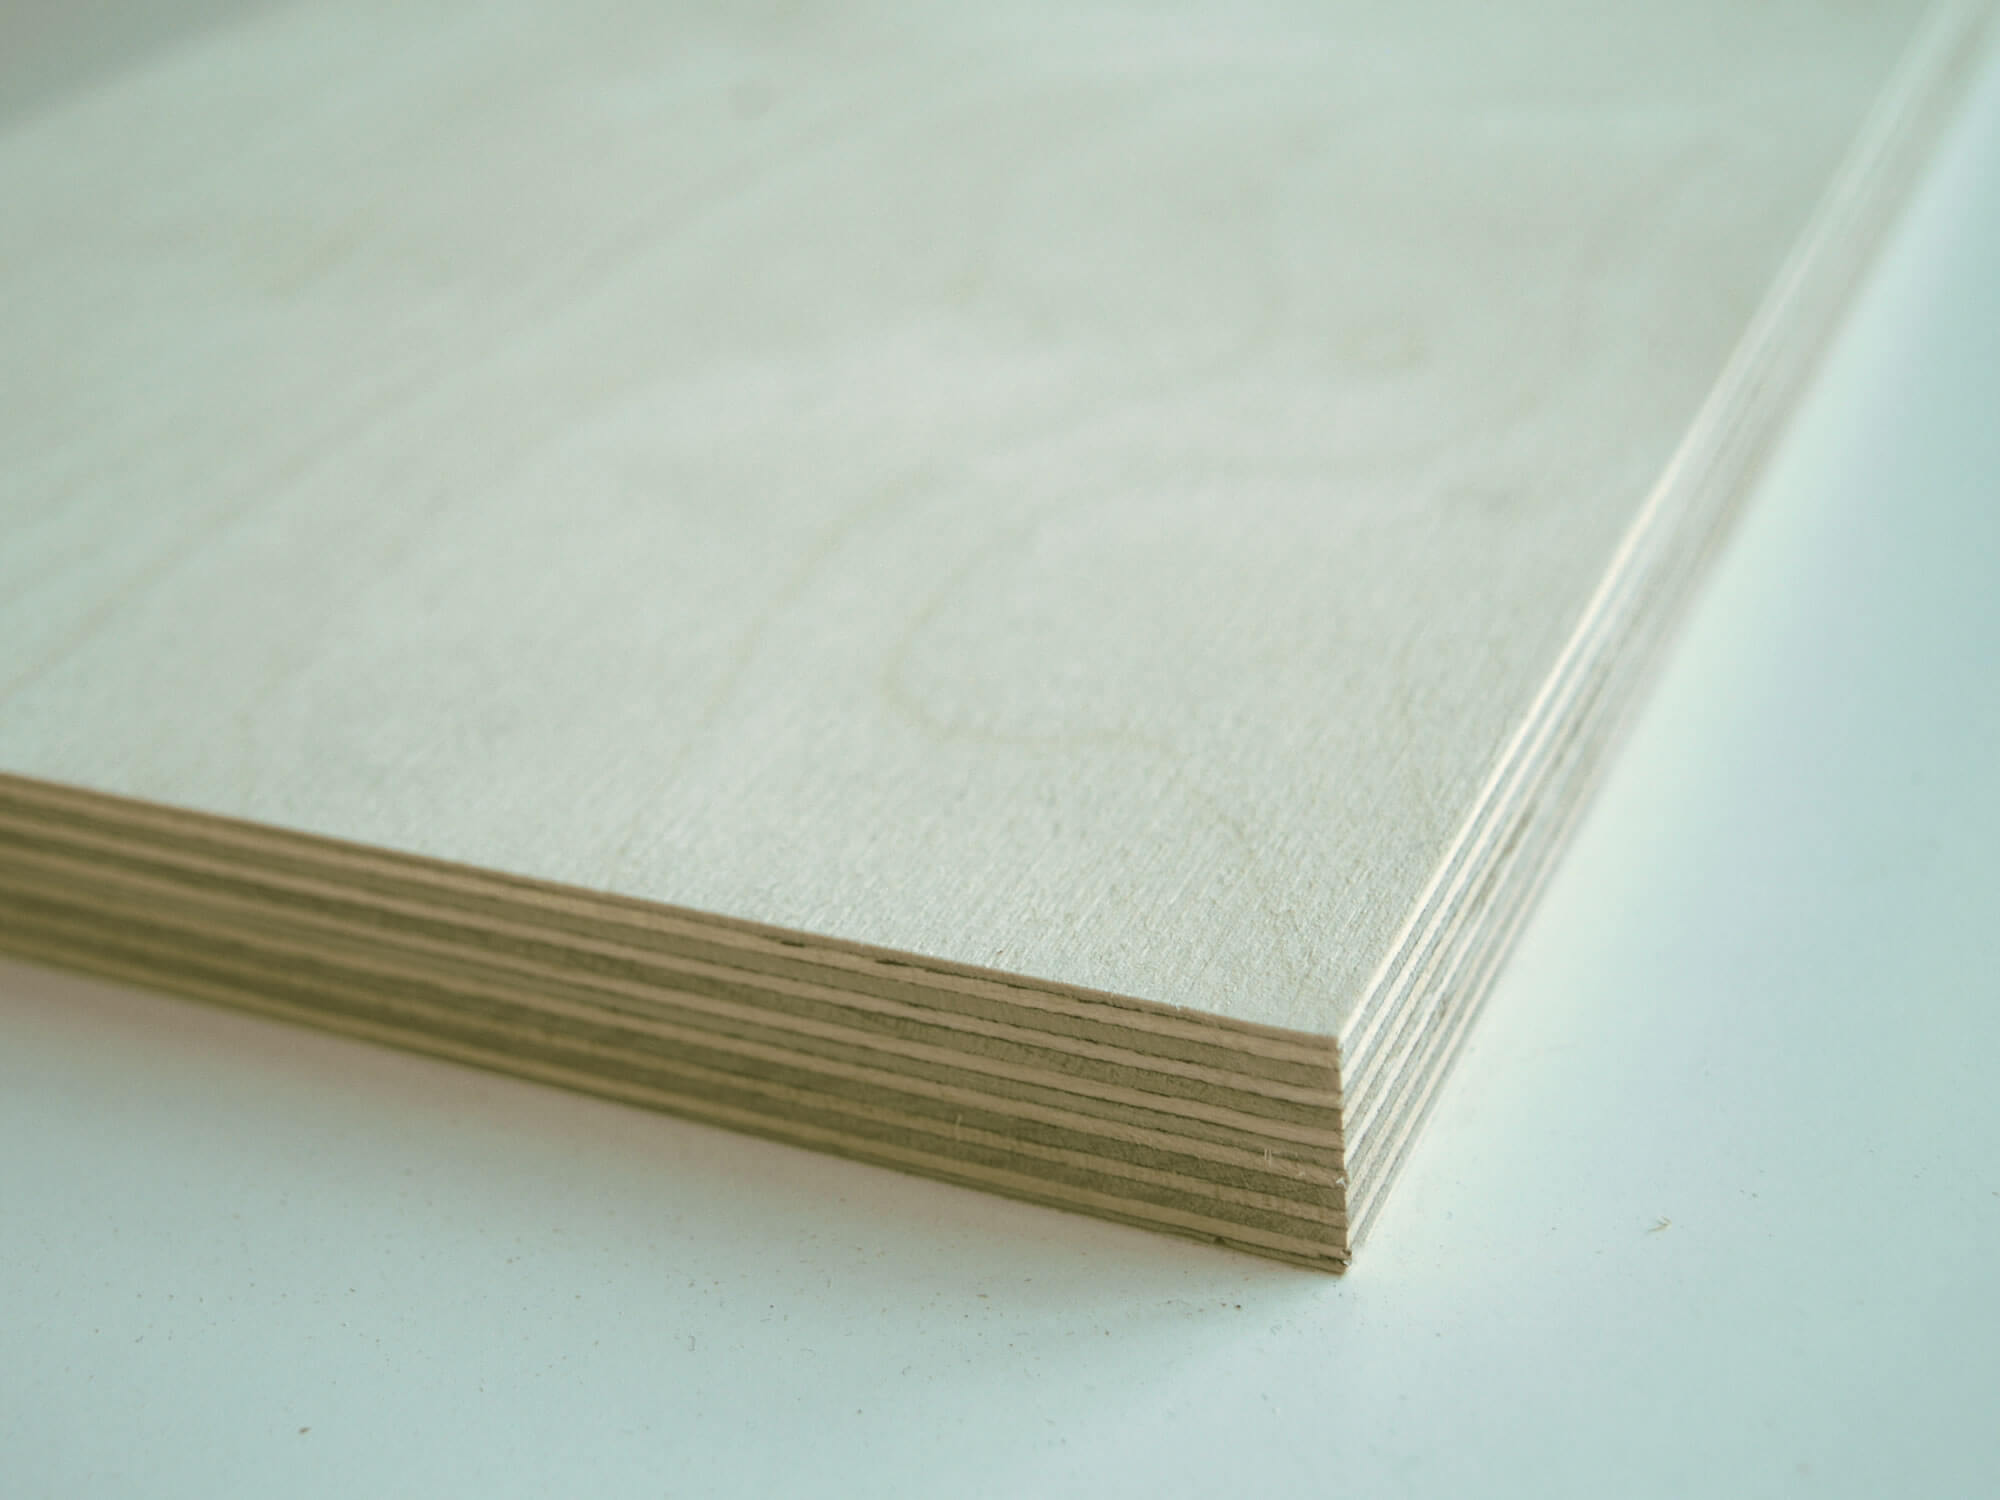 Fabrication supplier materials cut construct for Plywood sheathing thickness